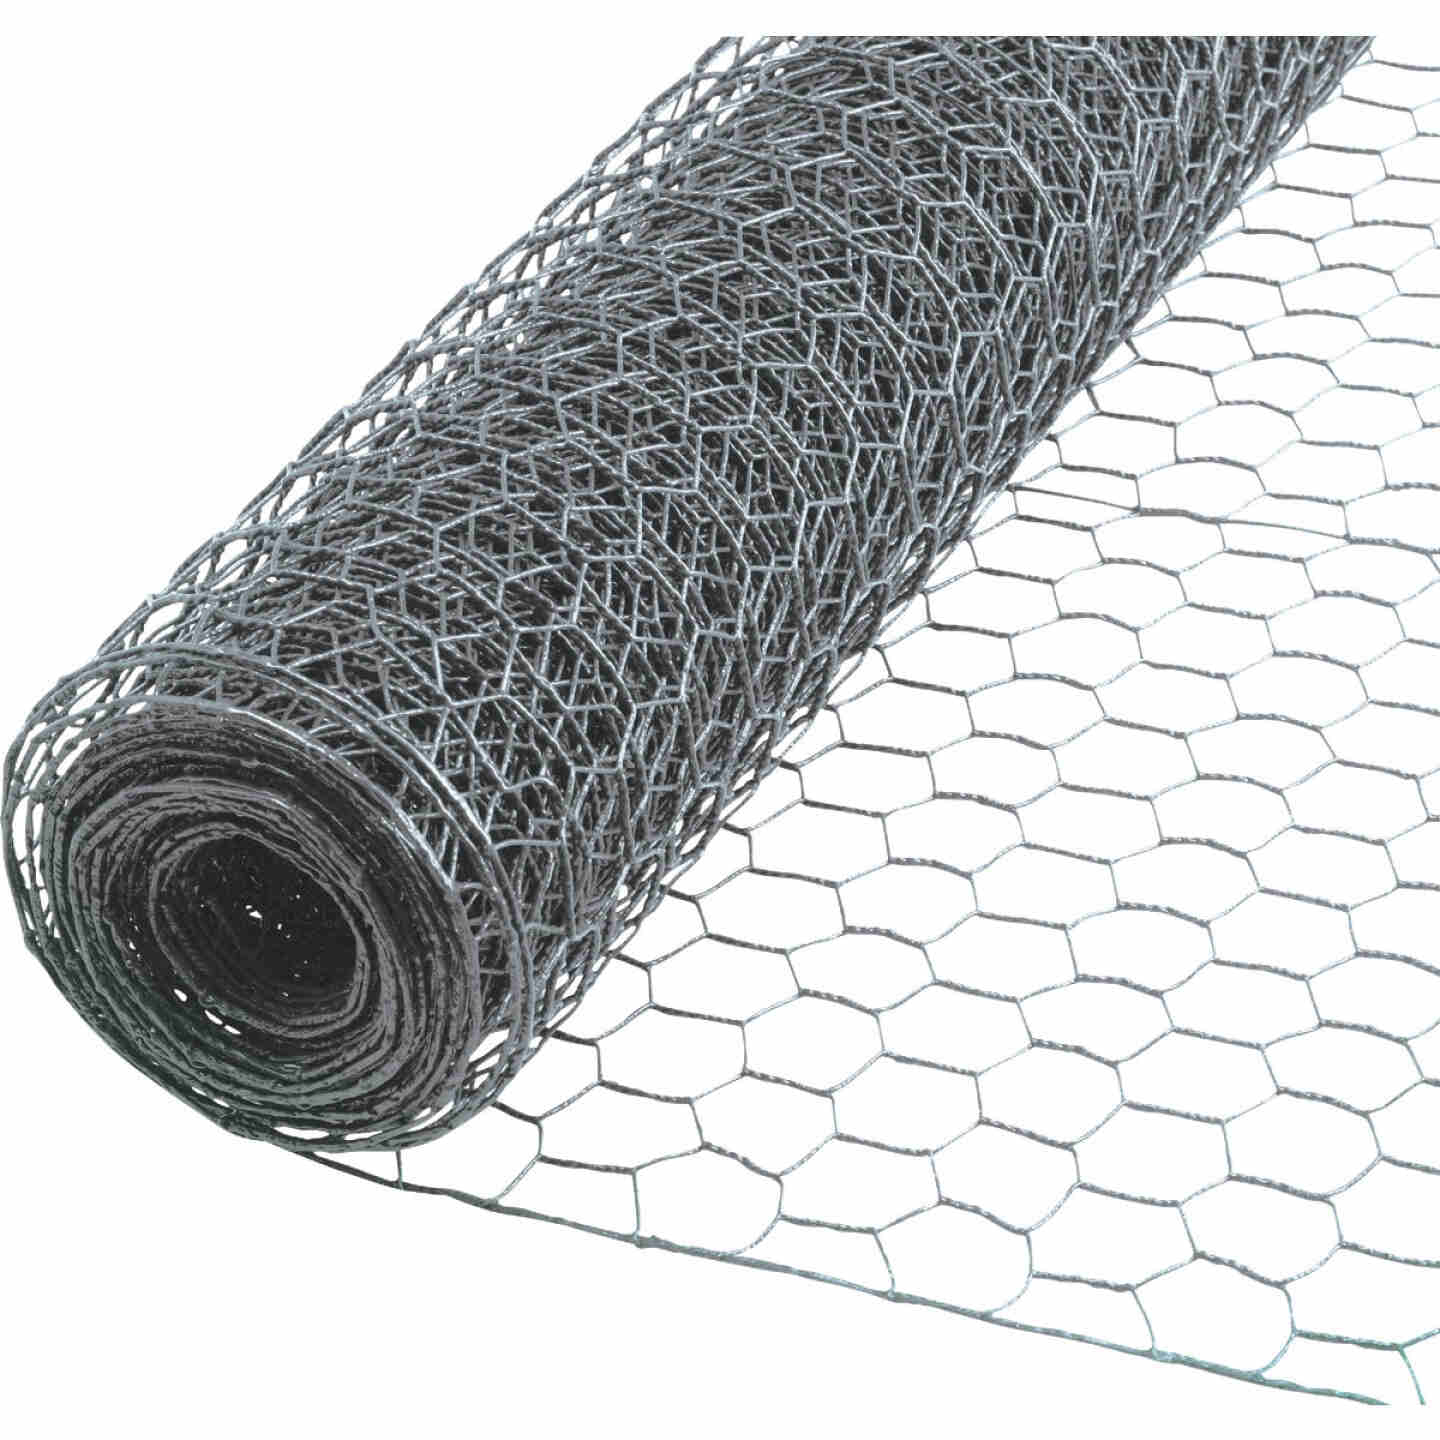 Do it 2 In. x 48 In. H. x 50 Ft. L. Hexagonal Wire Poultry Netting Image 1